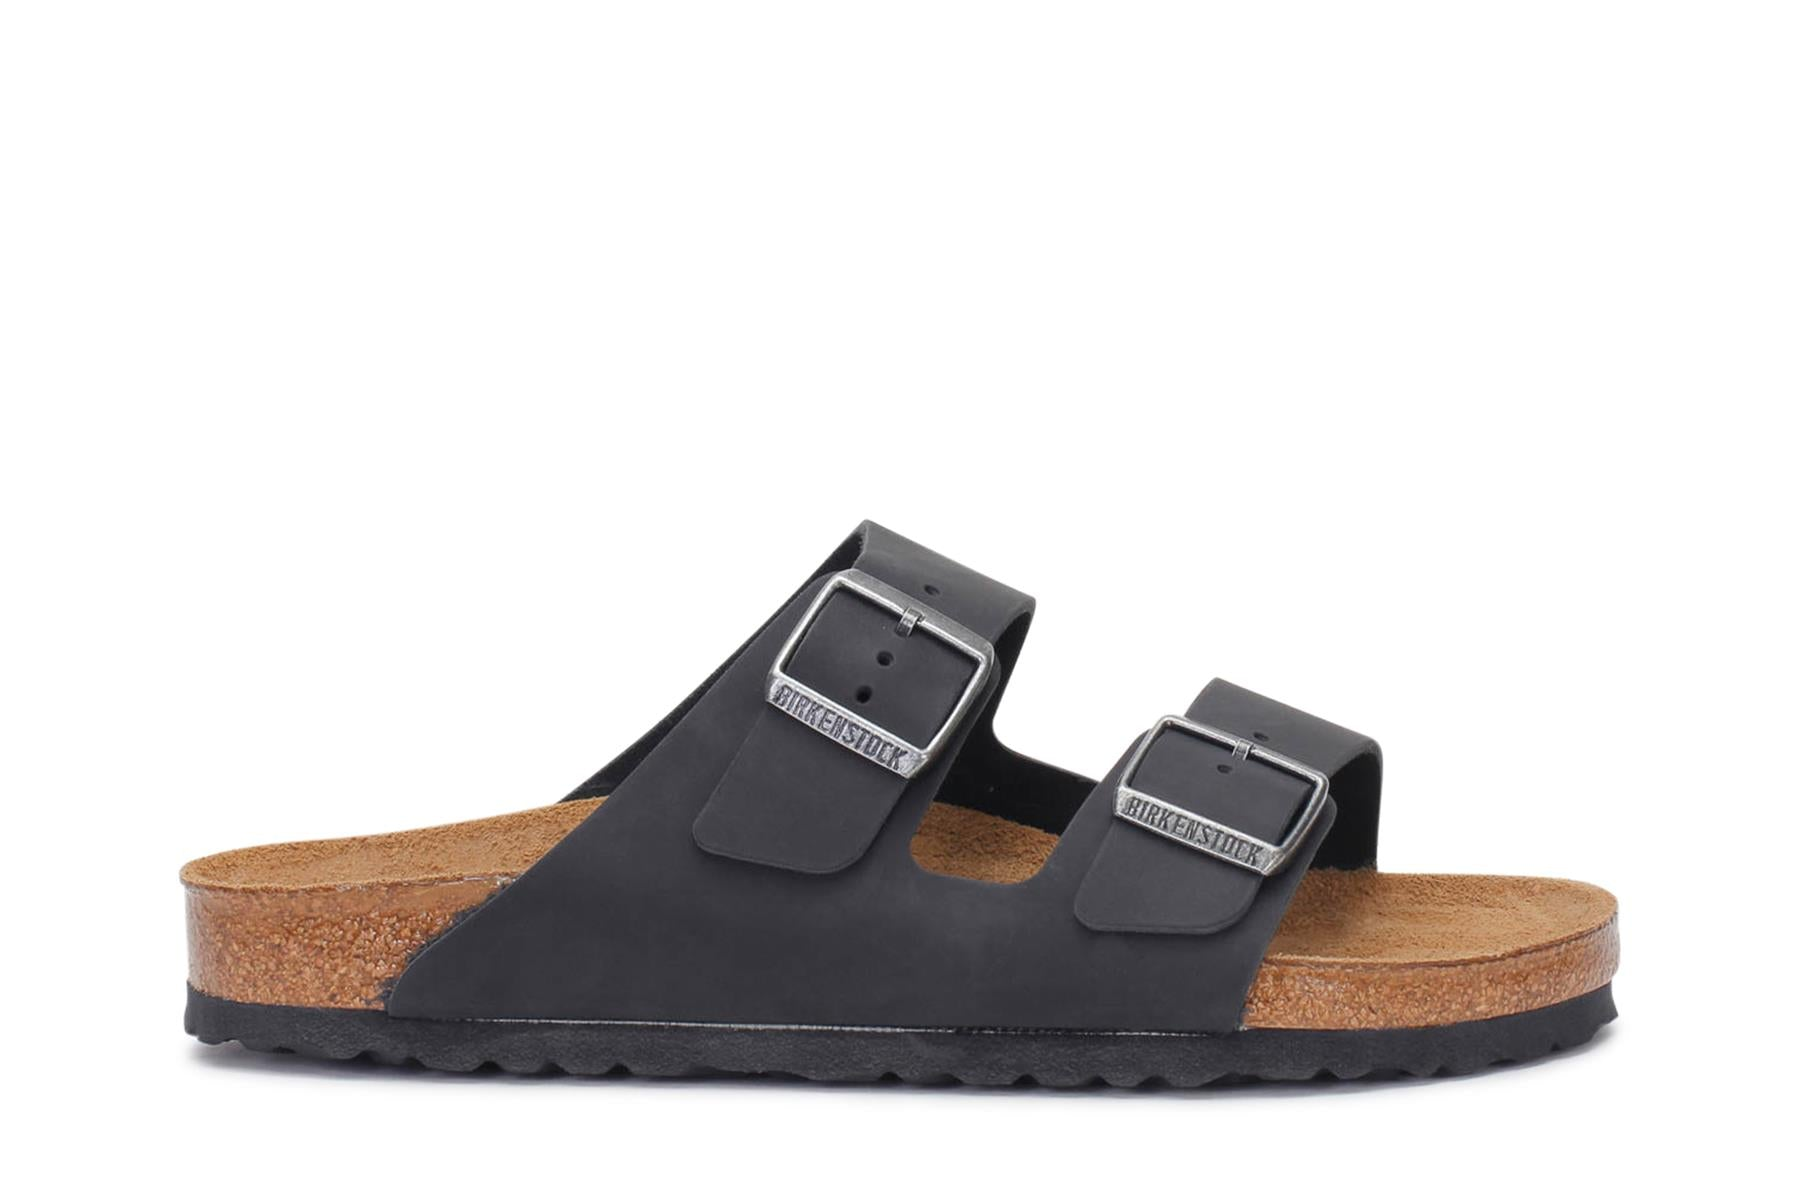 birkenstock-mens-slide-sandals-arizona-bs-soft-footbed-black-oiled-nubuck-752481-main